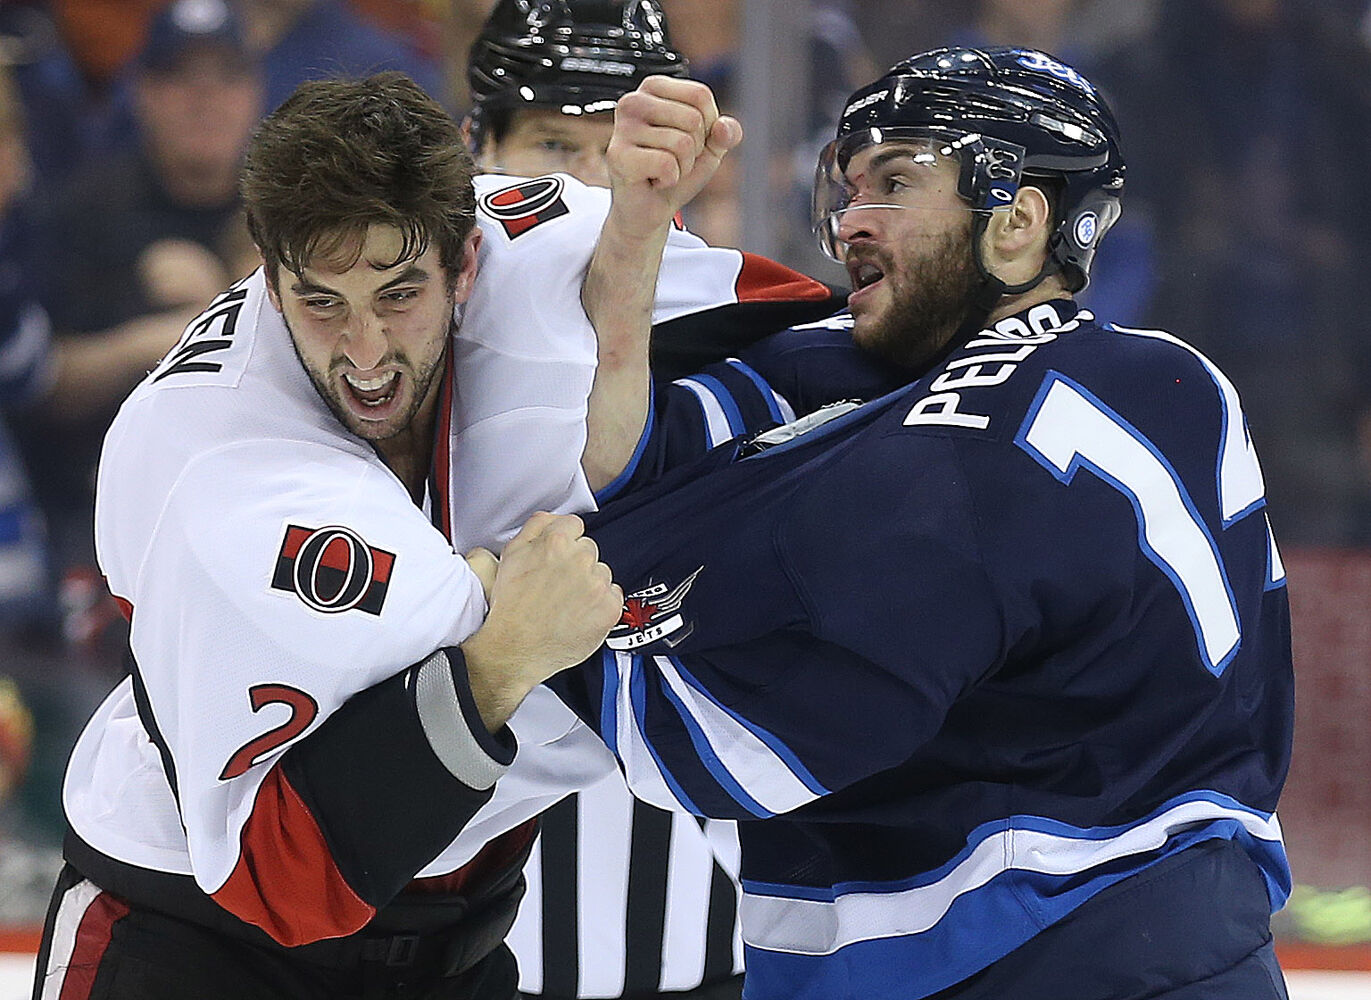 Ottawa Senators' Jared Cowen (2) fights Winnipeg Jets' Anthony Peluso (14) during the second period. (TREVOR HAGAN / WINNIPEG FREE PRESS)